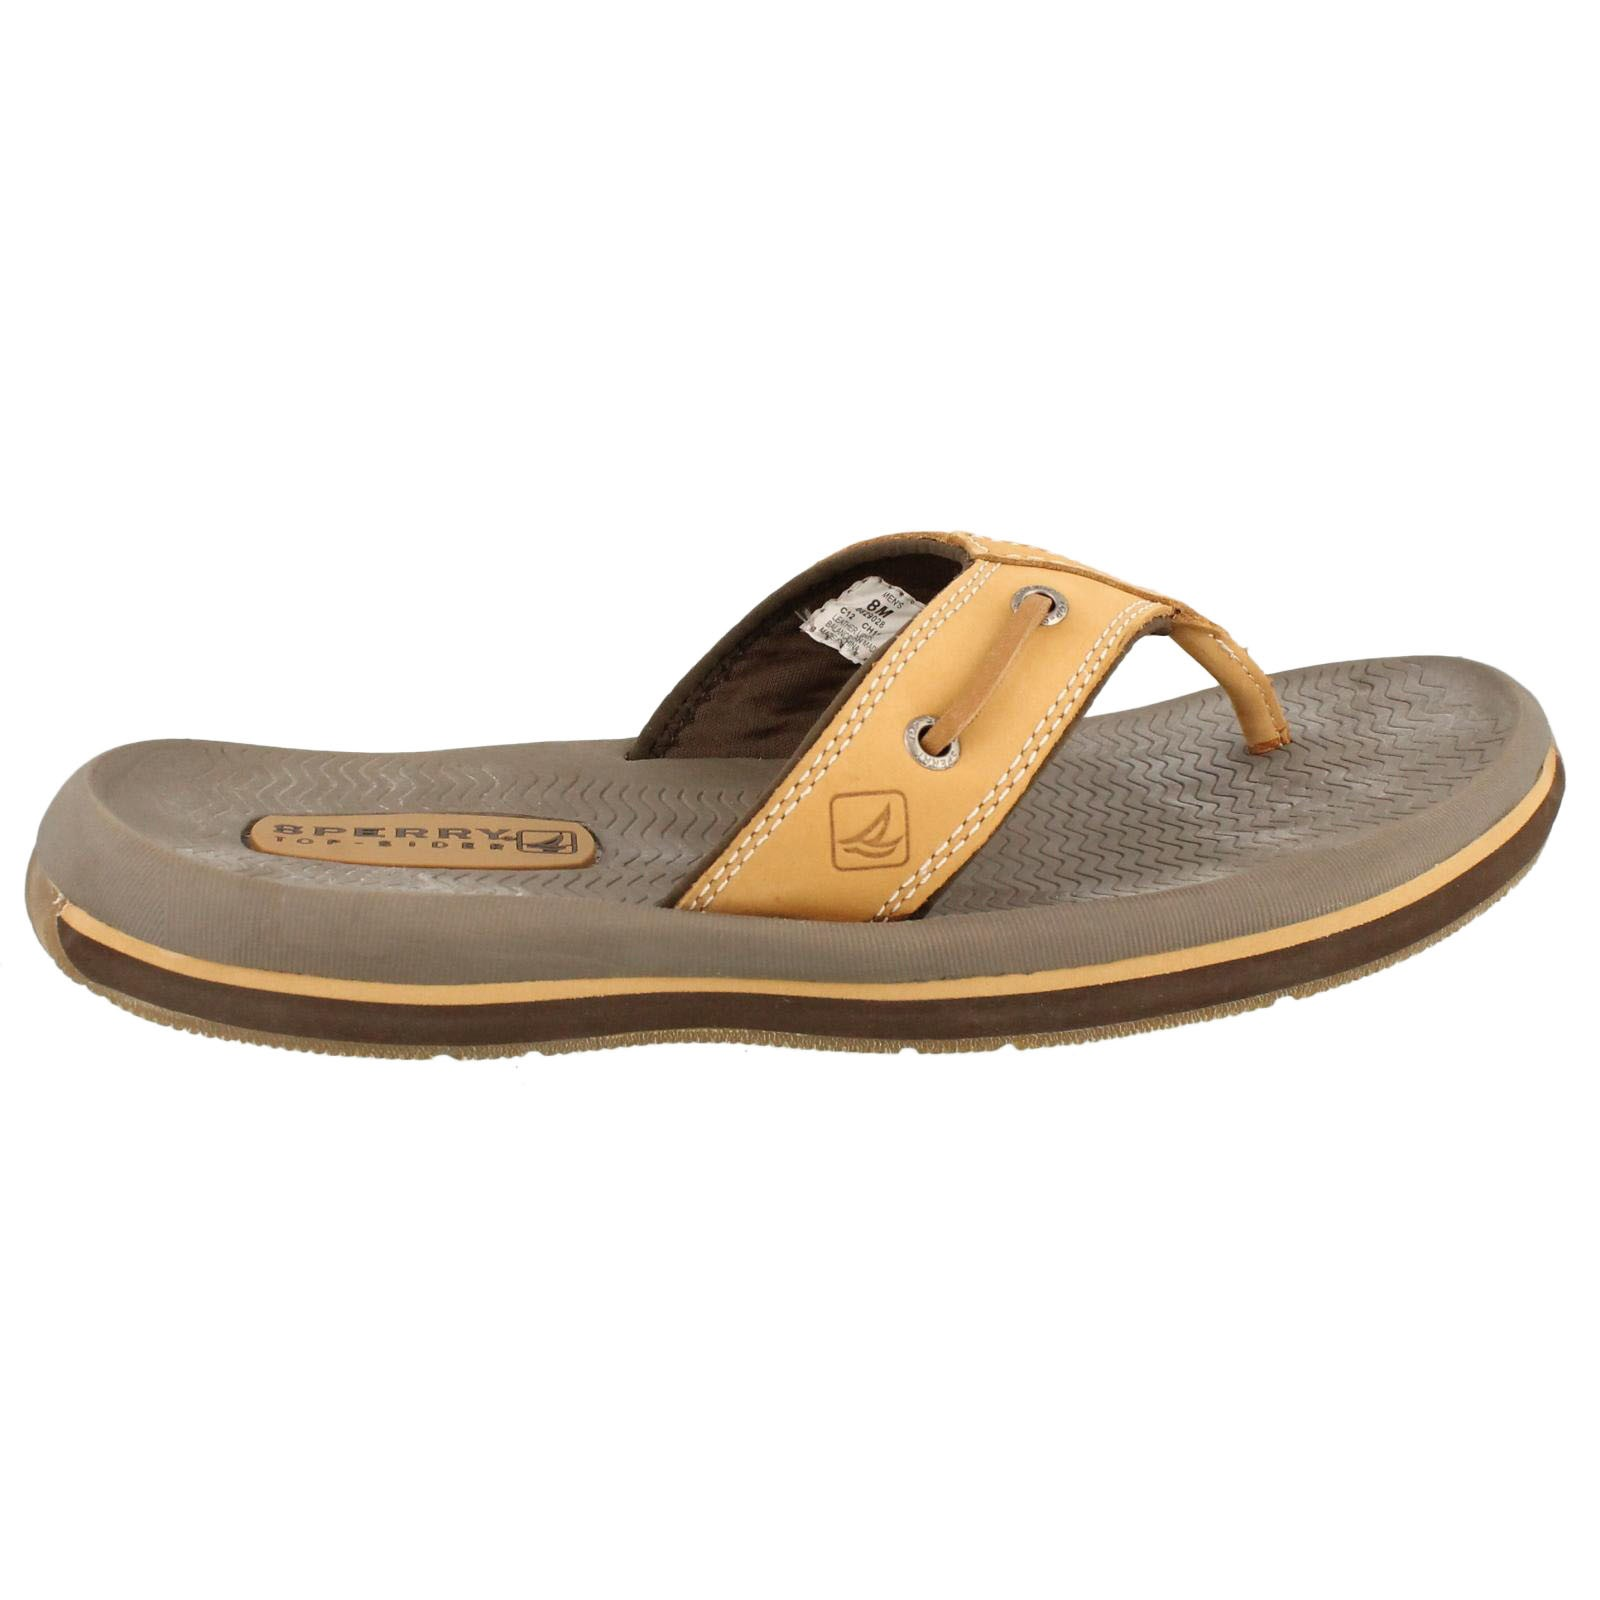 Men's Sperry, Santa Cruz thong